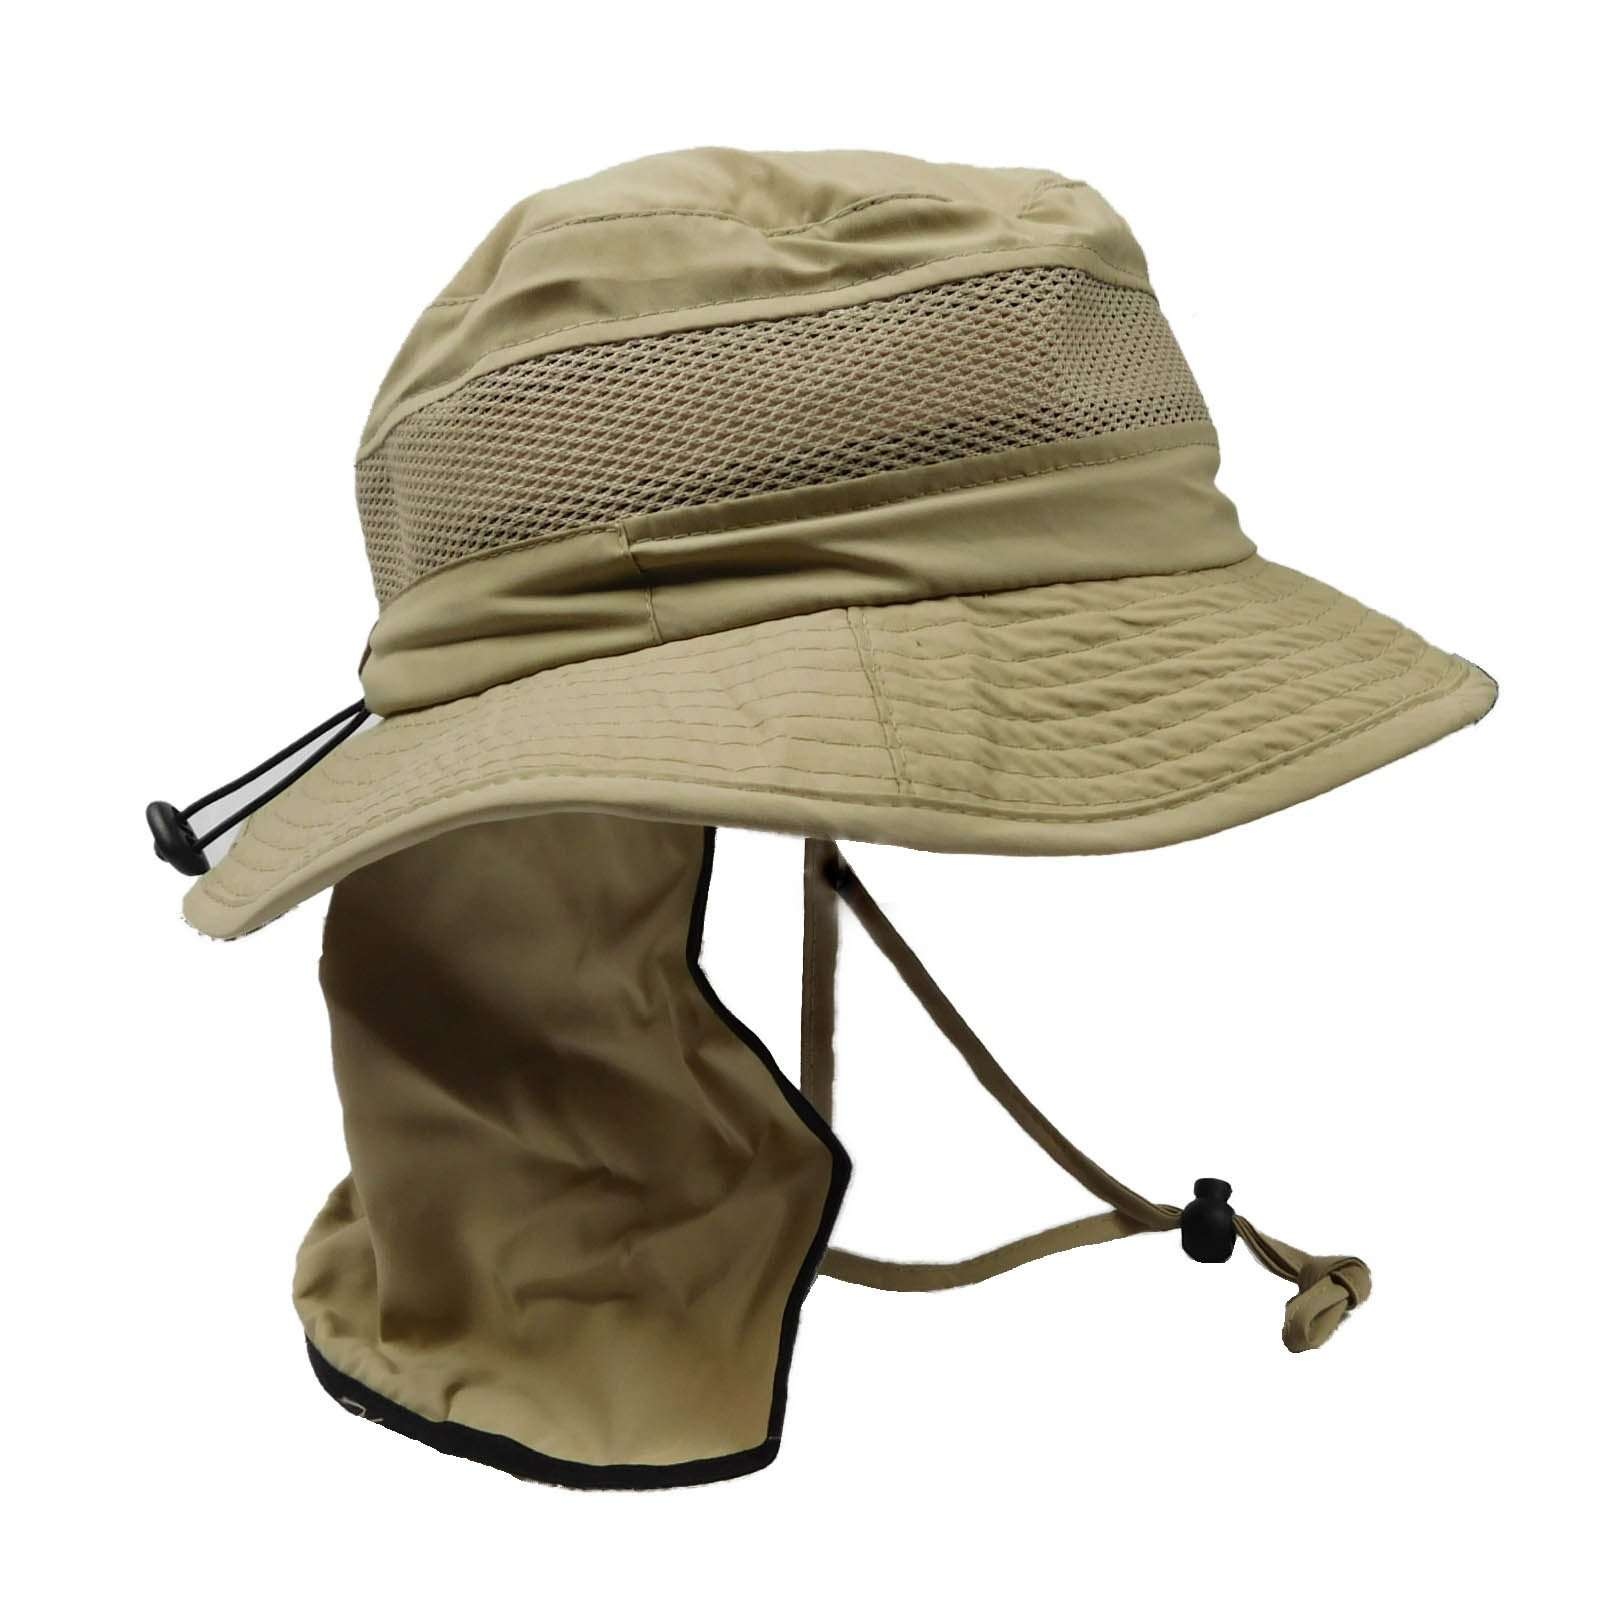 ee040fe4d2f Stetson No Fly Zone Fishing Hat-Insect Repellent Sun Shield Bucket Hat